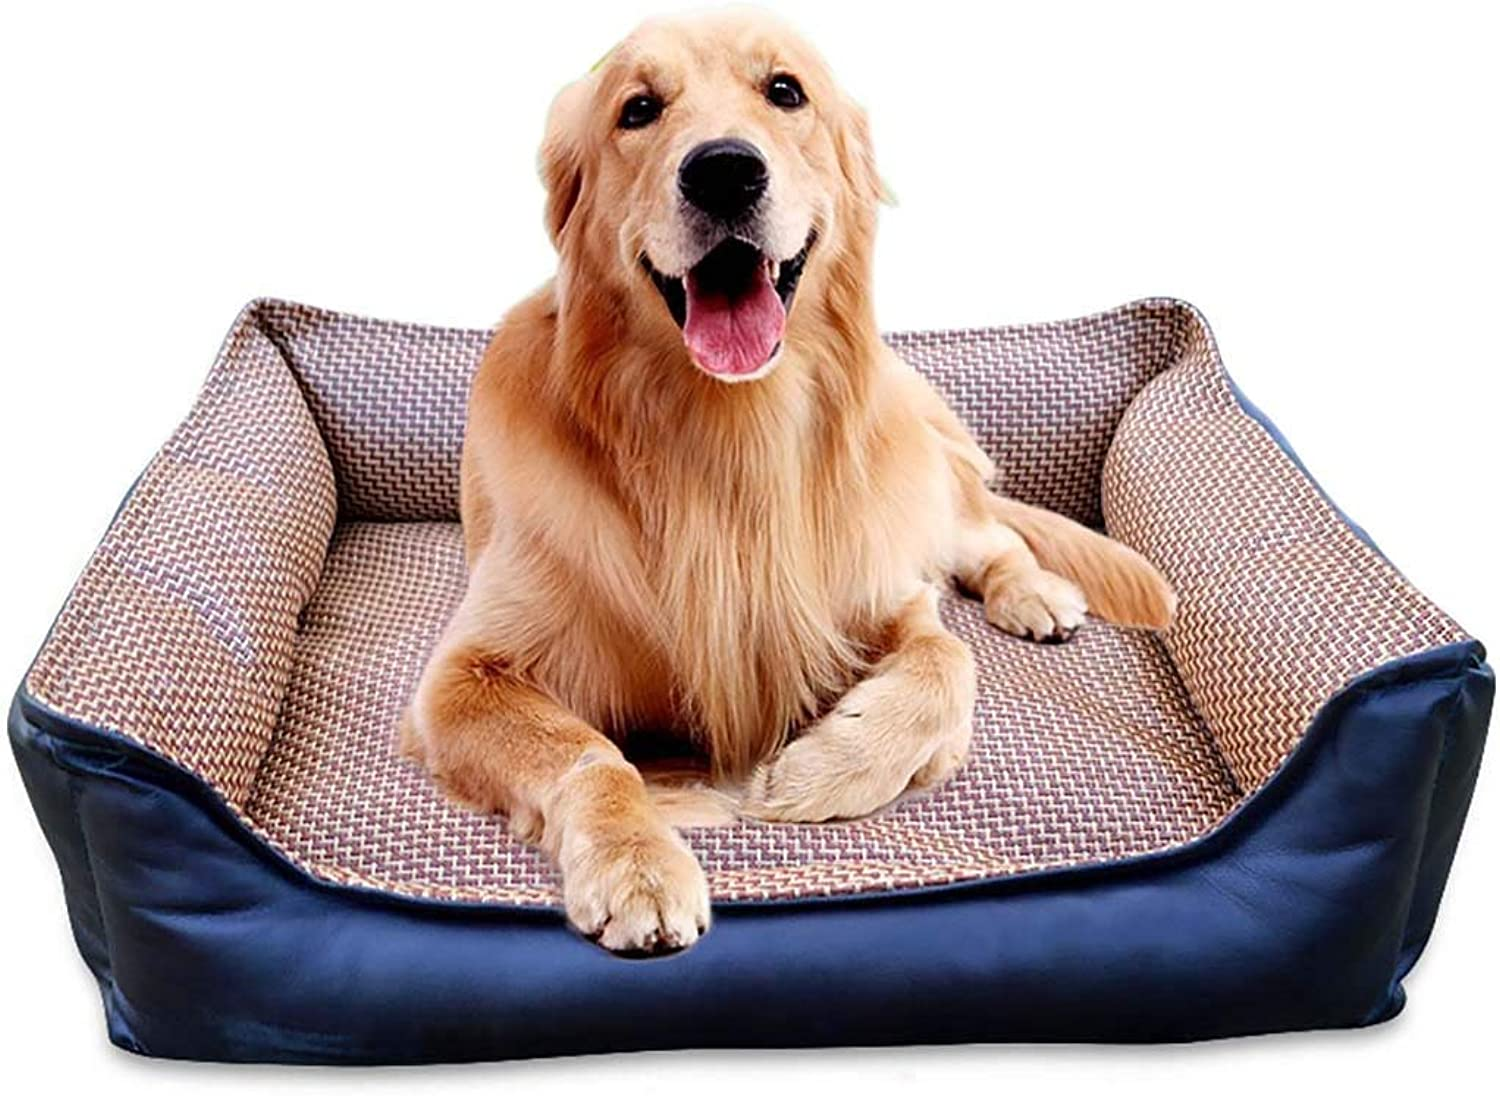 J&Z Dog sofa cat nest removable and washable Four Seasons ApplySmall Dog Bed Matte Dog Room, bluee, Three Sizes + +,M